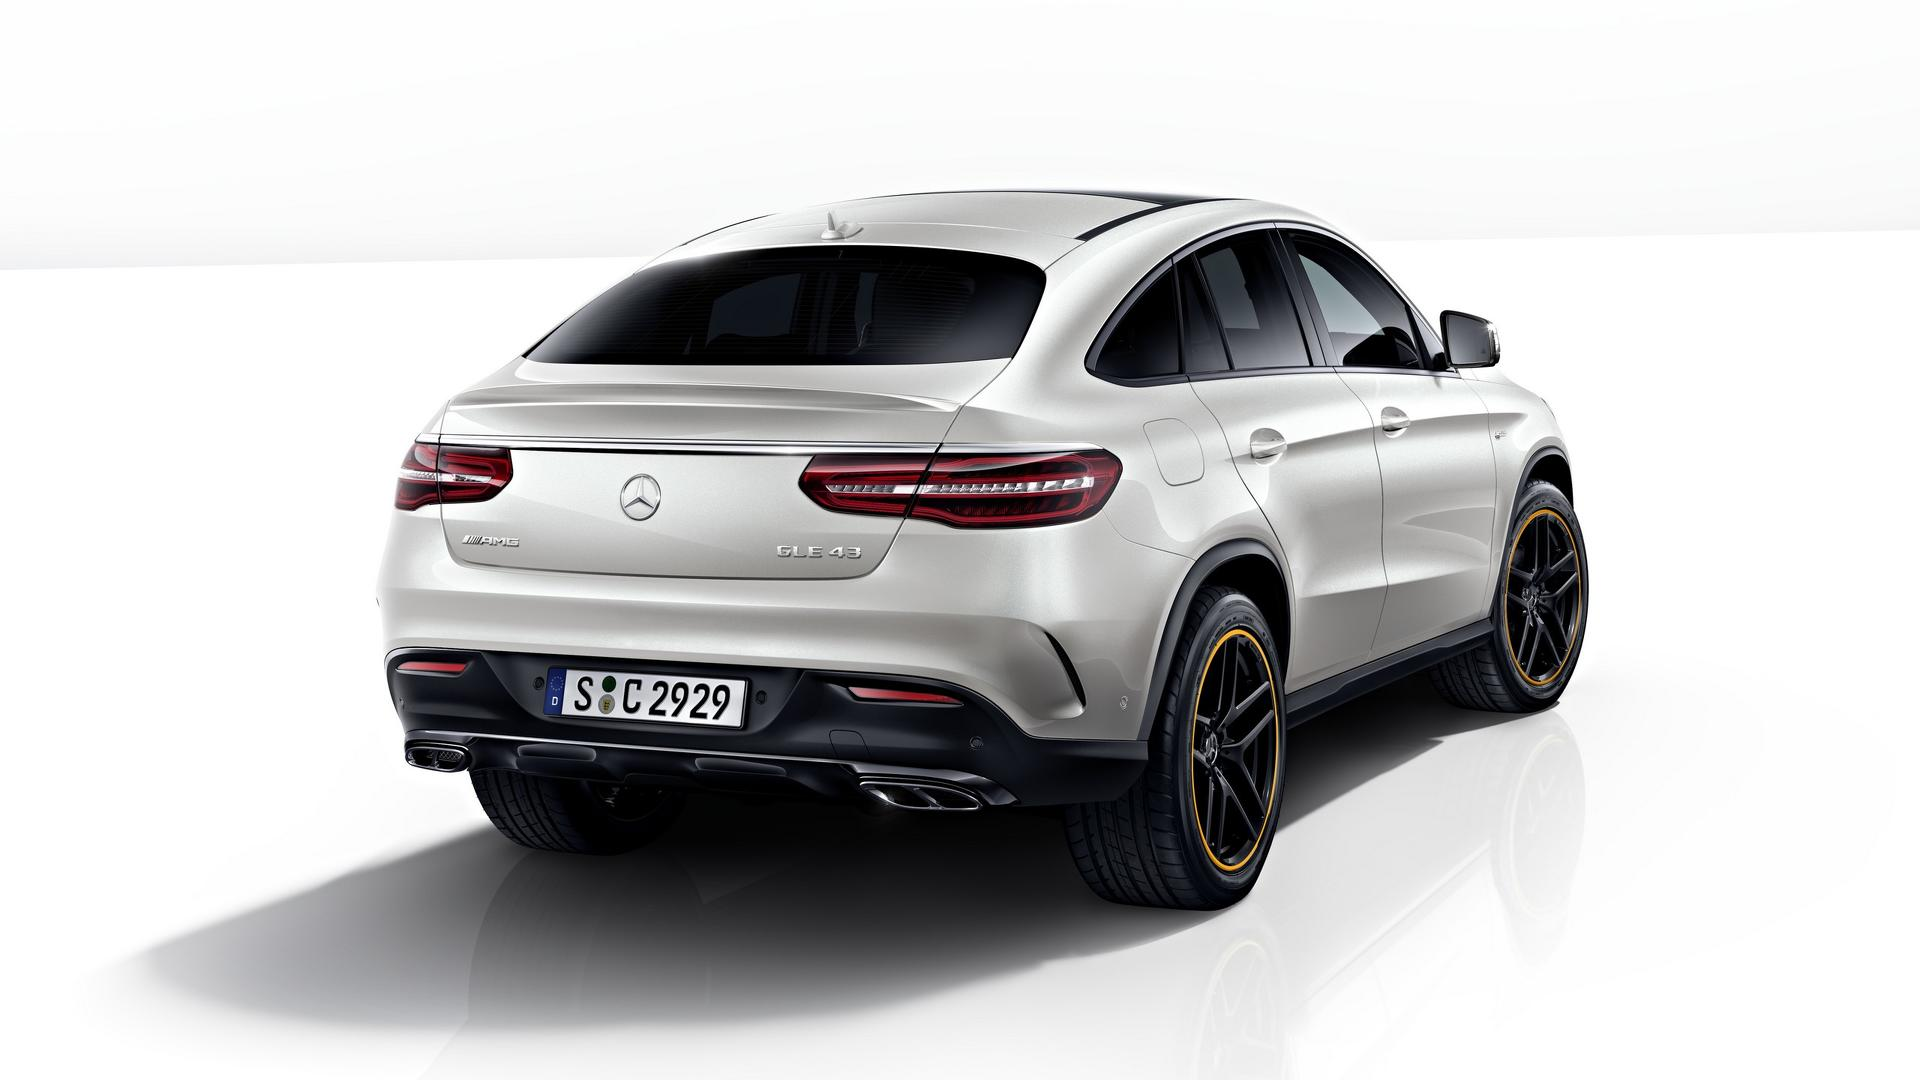 Mercedes Gle Coupe Orangeart Edition Barely Has Any Orange